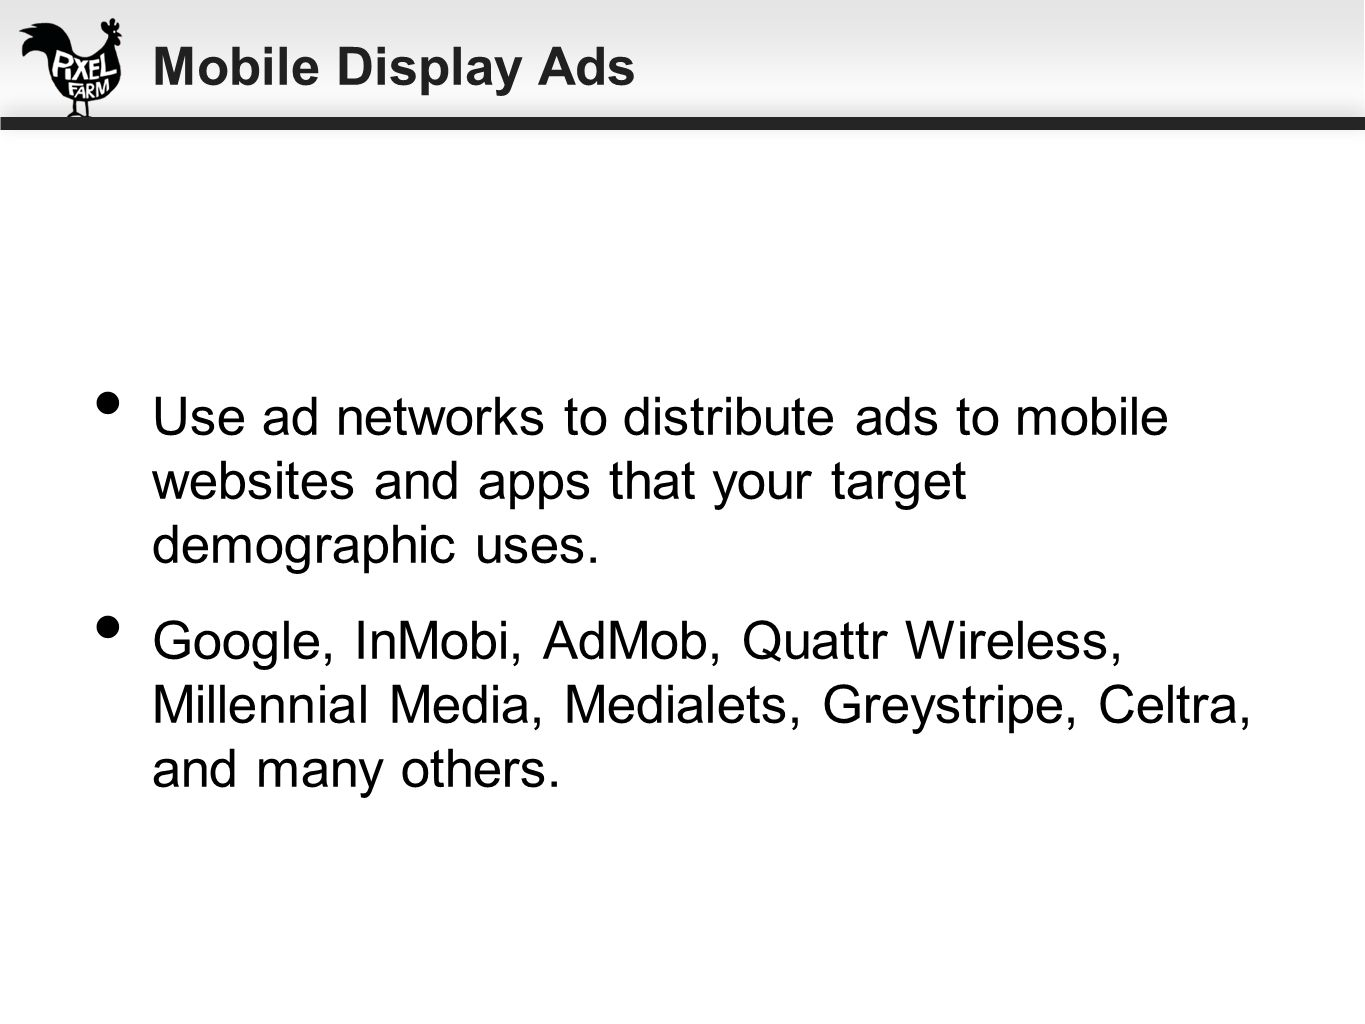 Mobile Display AdsUse ad networks to distribute ads to mobile websites and apps that your target demographic uses.